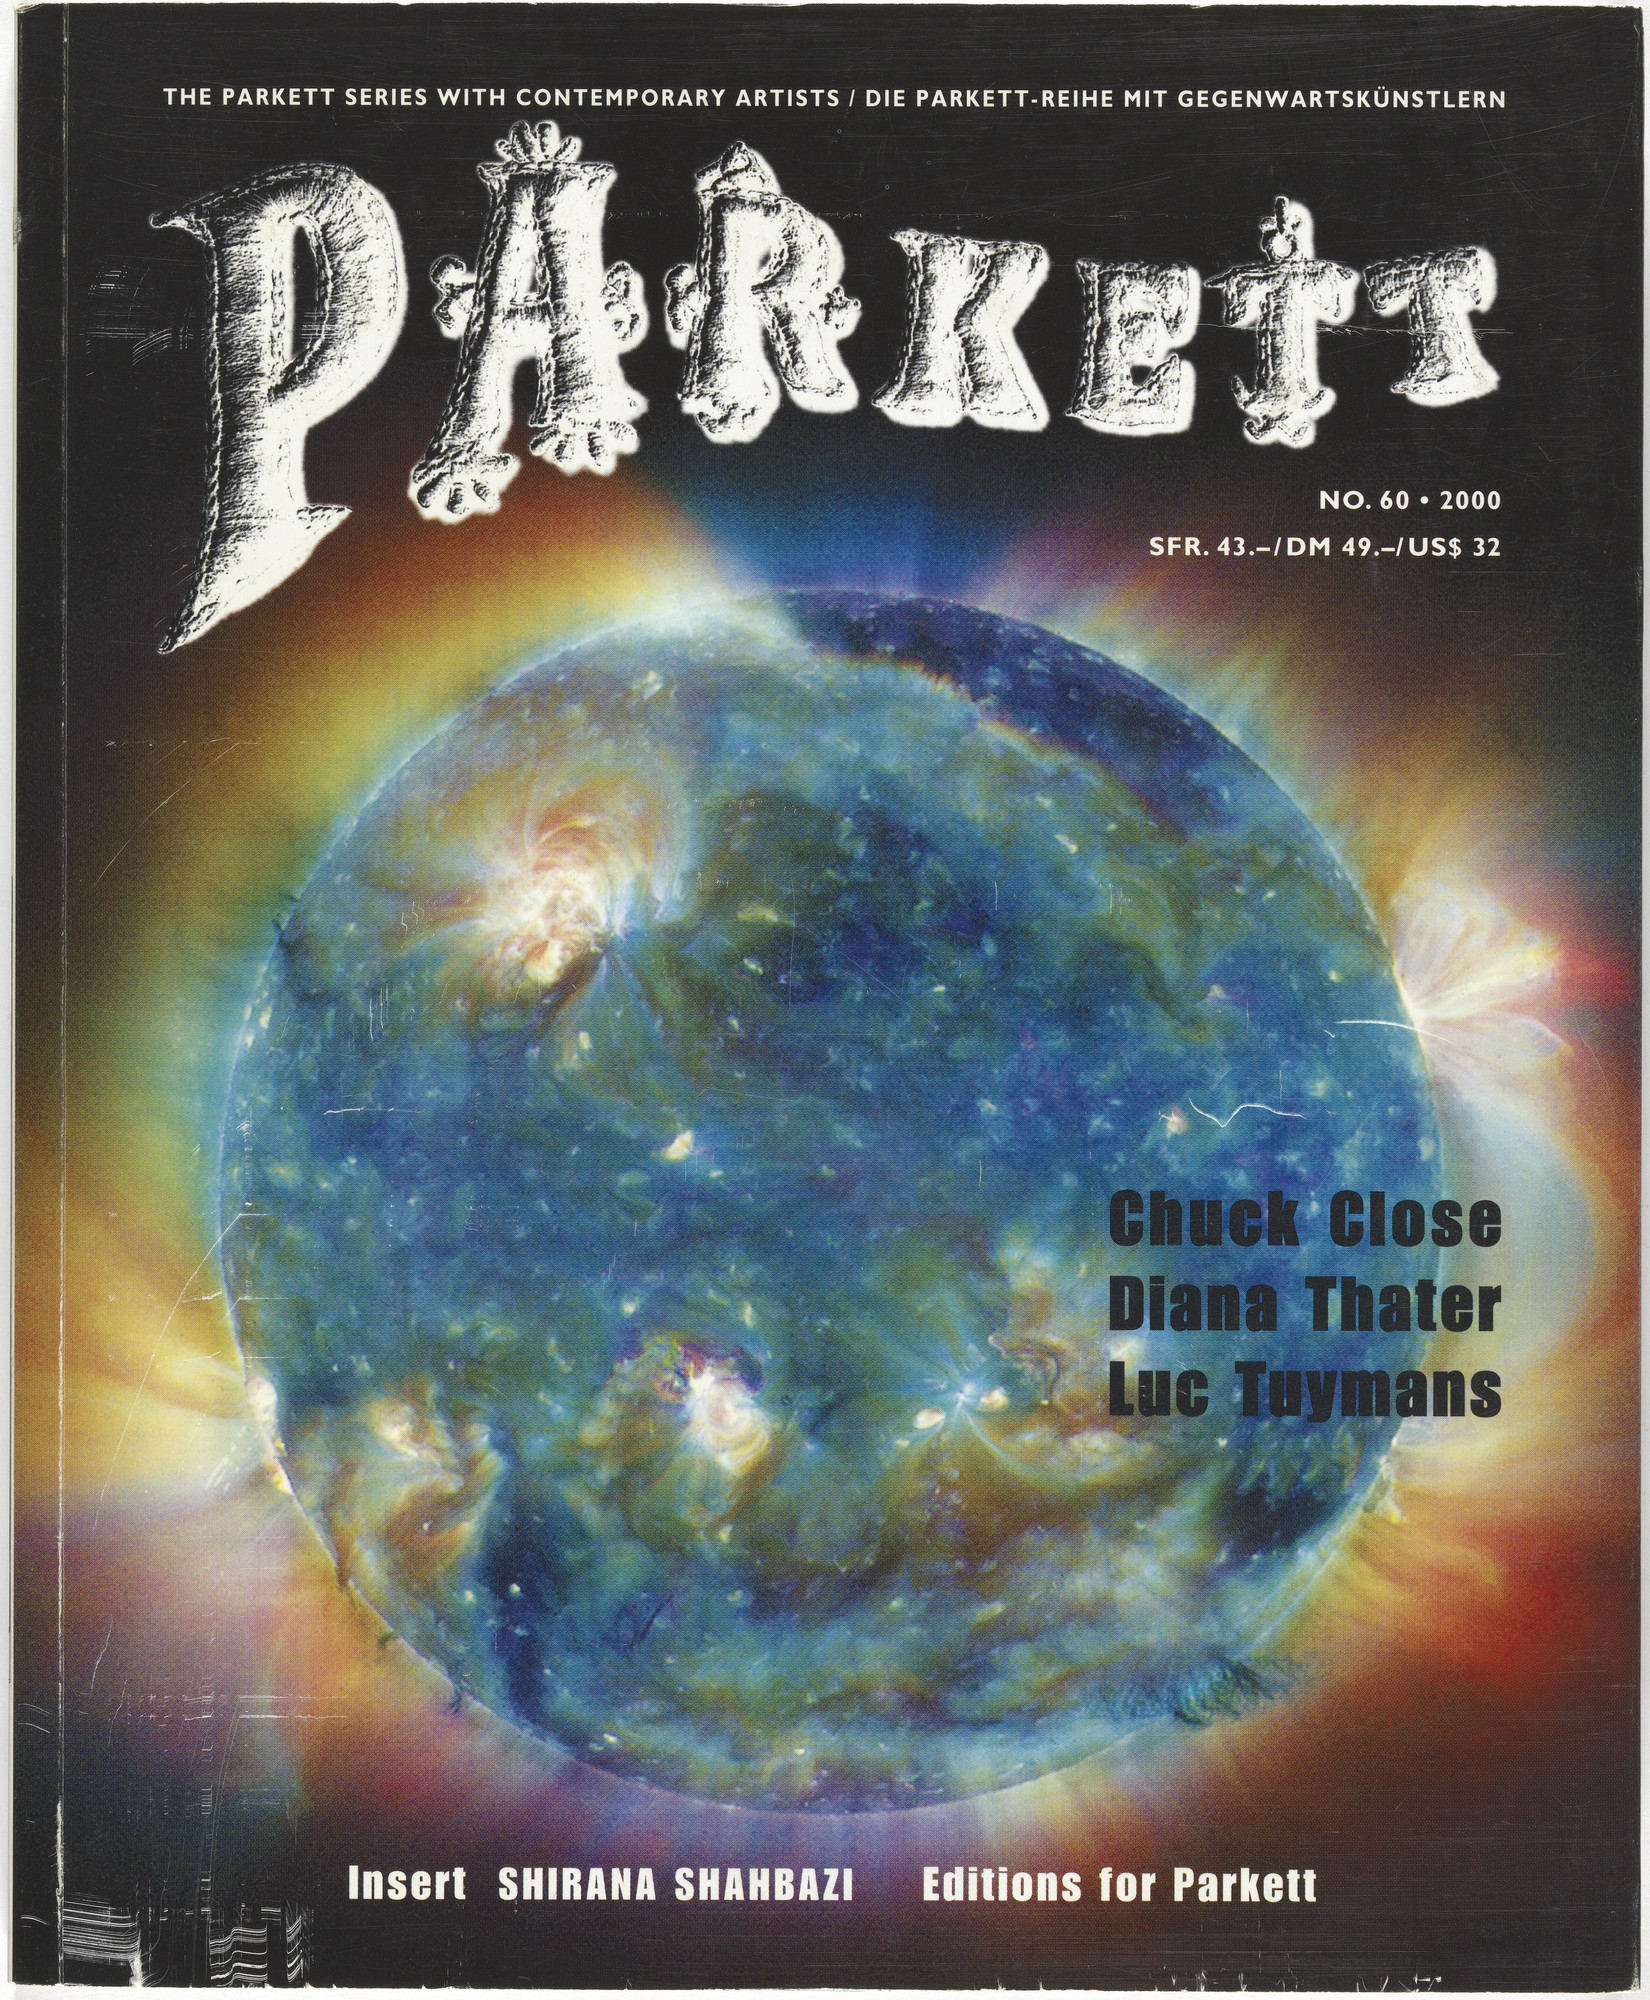 Various Artists, Diana Thater, Luc Tuymans, Chuck Close, Shirana Shahbazi, Dave Eggers. Parkett no. 60. 2000